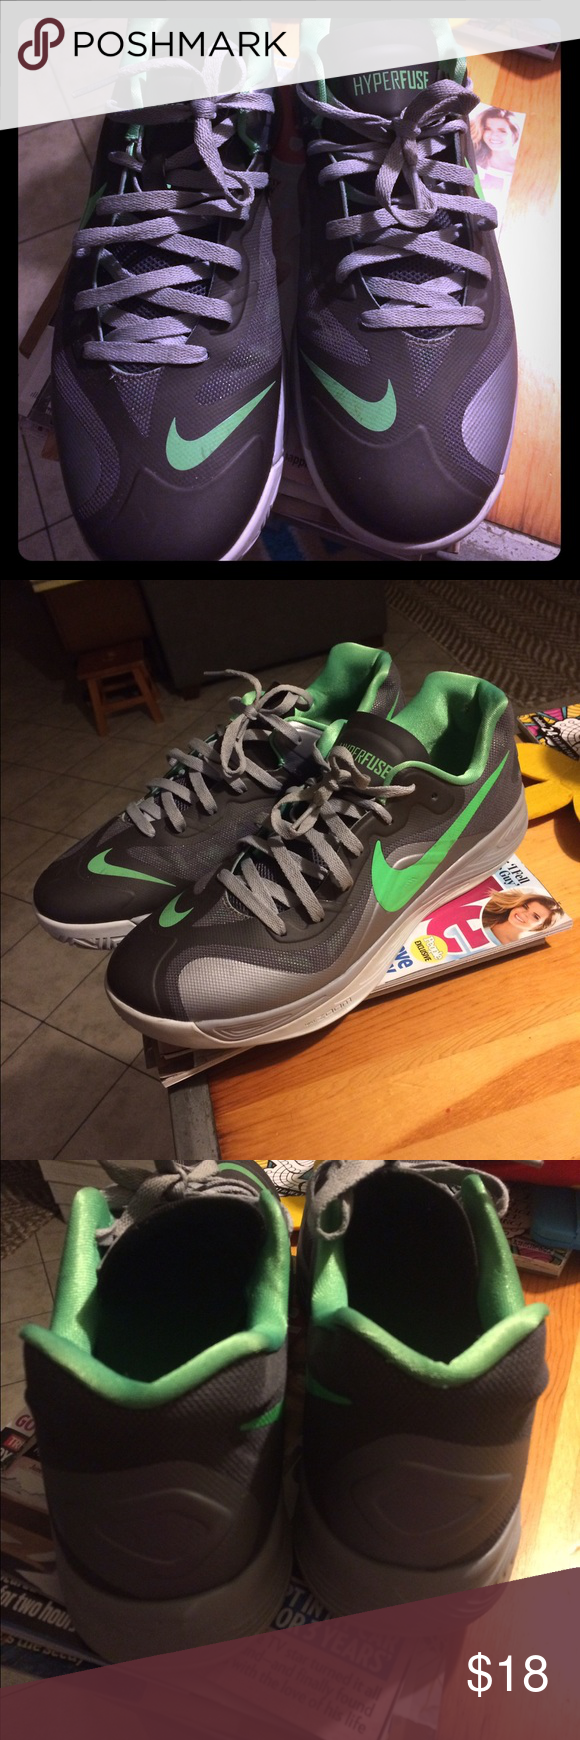 Mens Hyperfuse Nike tennis shoe. Size 13 EUC. Only wore a handful of times. Grey workout shoe Nike Shoes Athletic Shoes